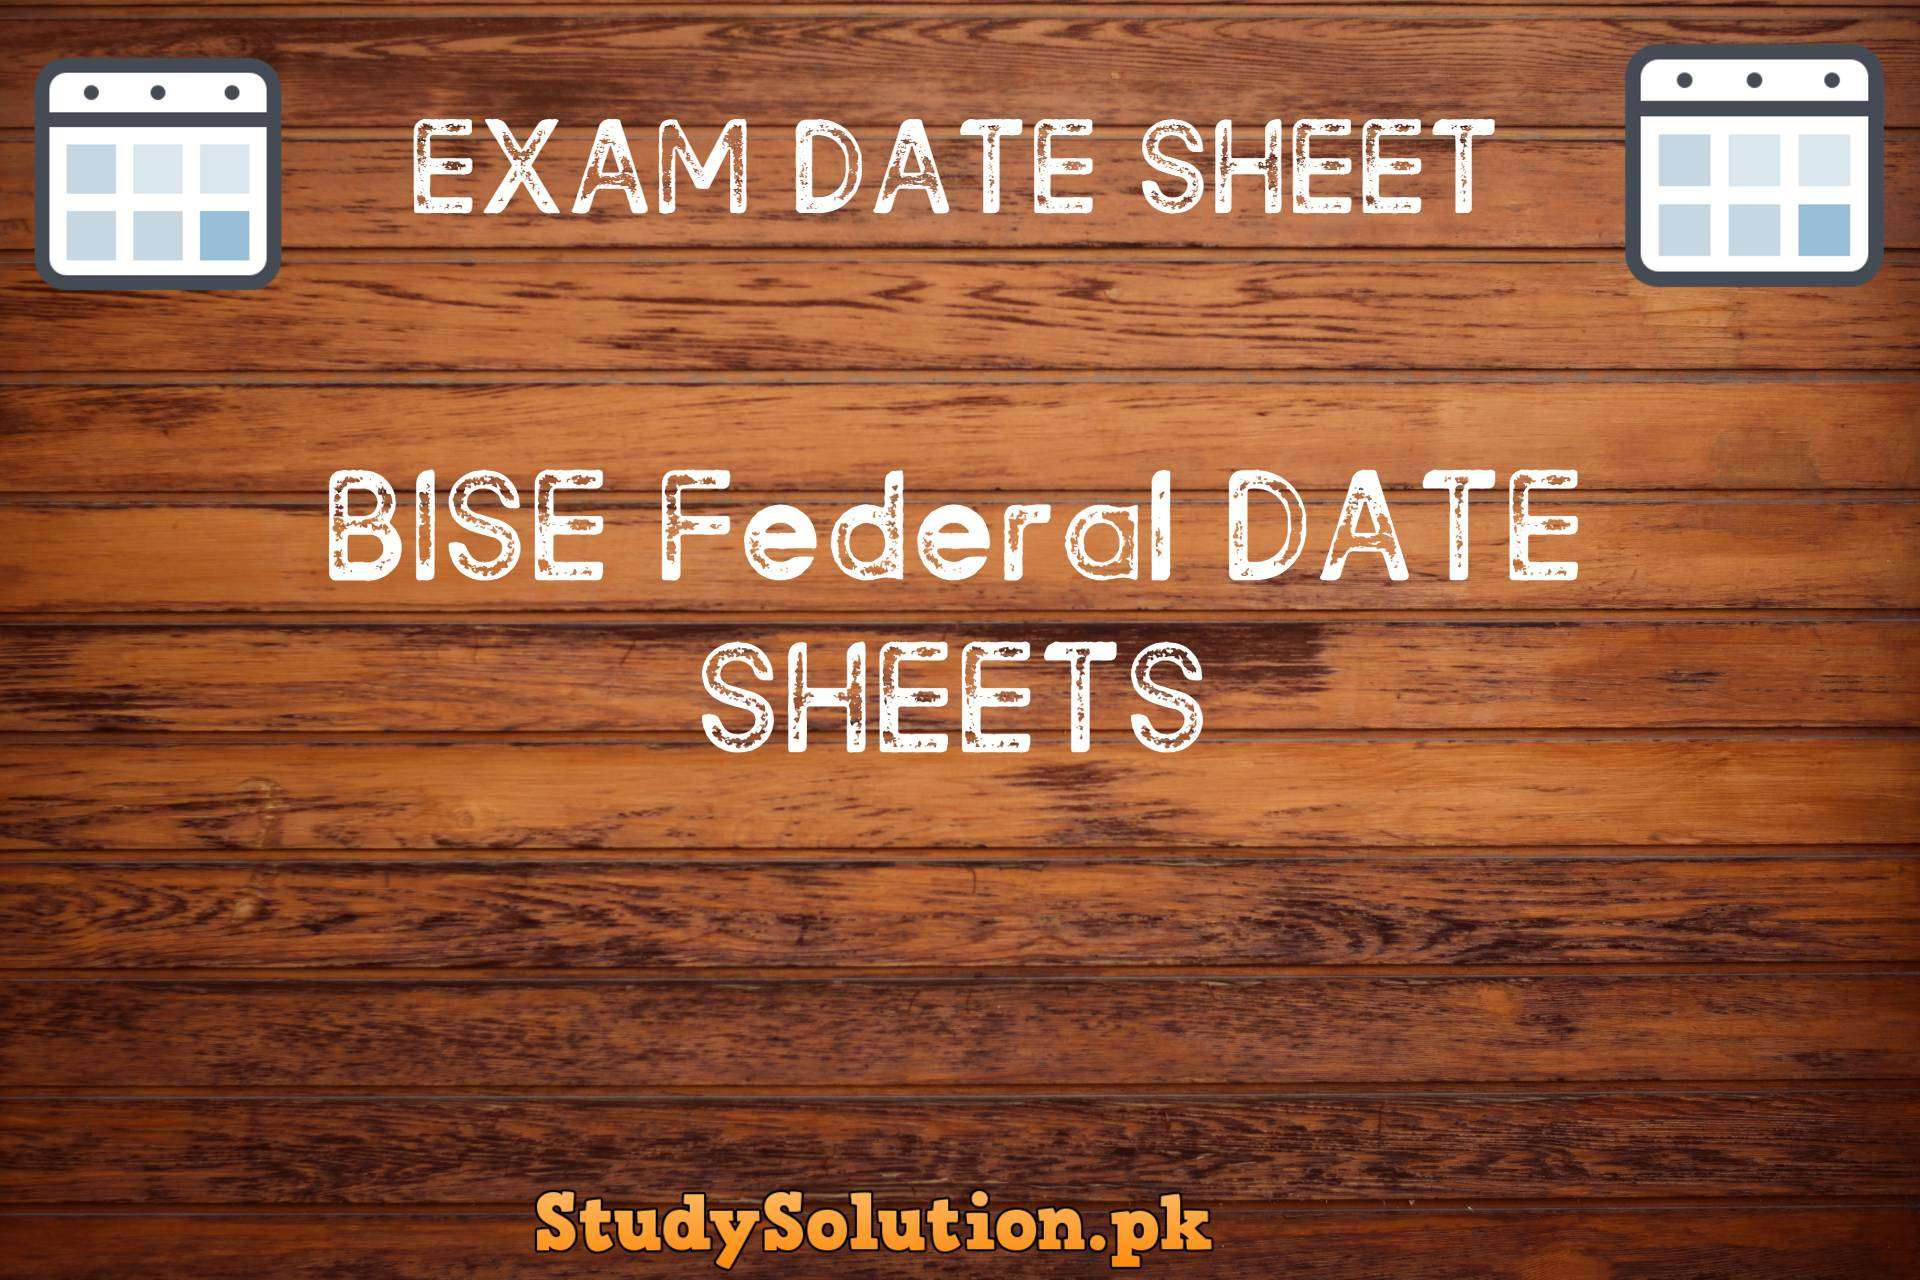 BISE Federal Date Sheets